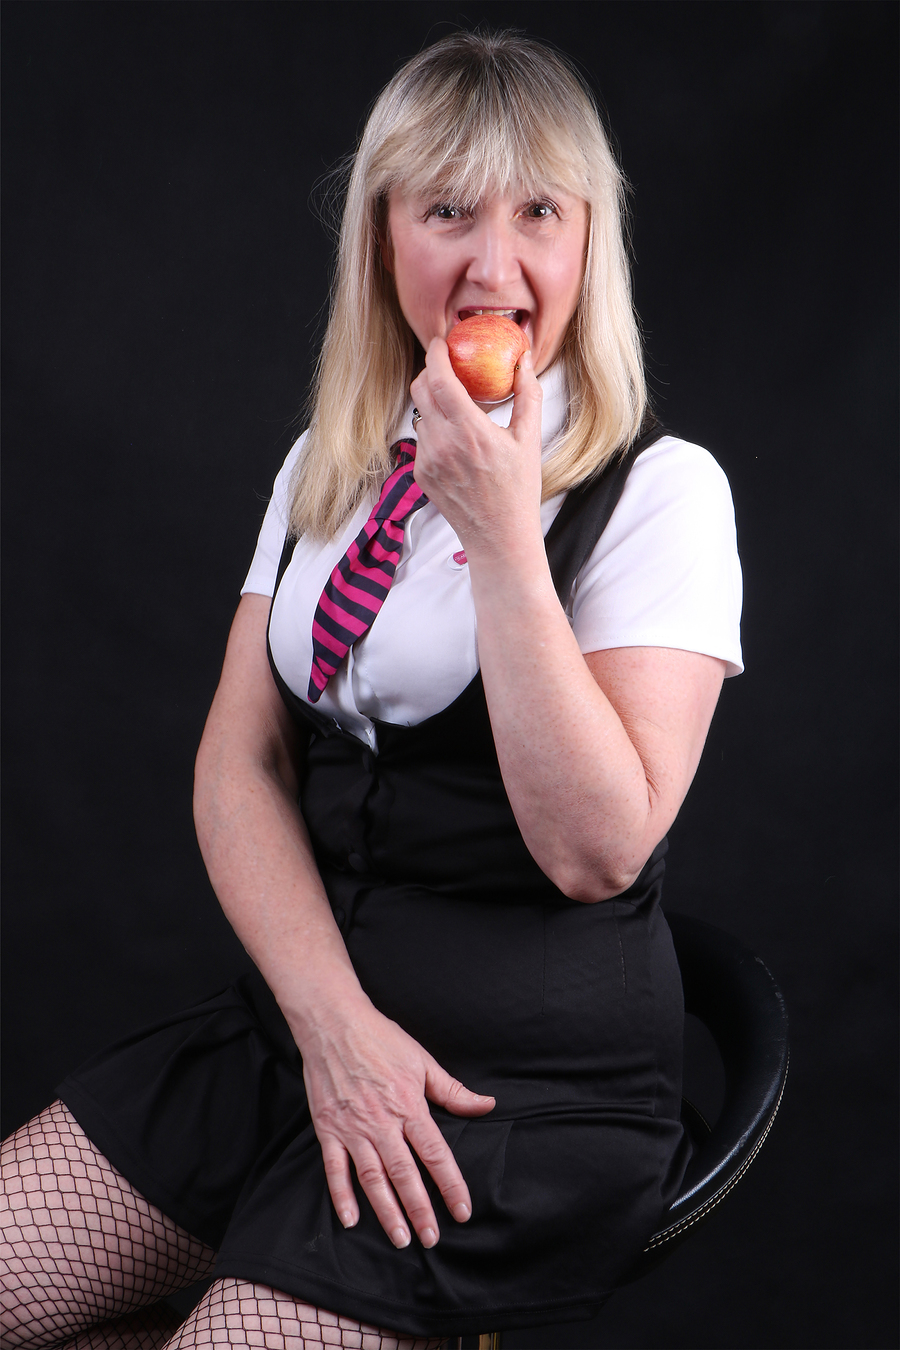 Apple for me then as teacher didn't want it / Photography by GTB Photography, Model Lady Patricia, Makeup by Lady Patricia, Taken at GTB Photography / Uploaded 27th April 2019 @ 08:04 PM